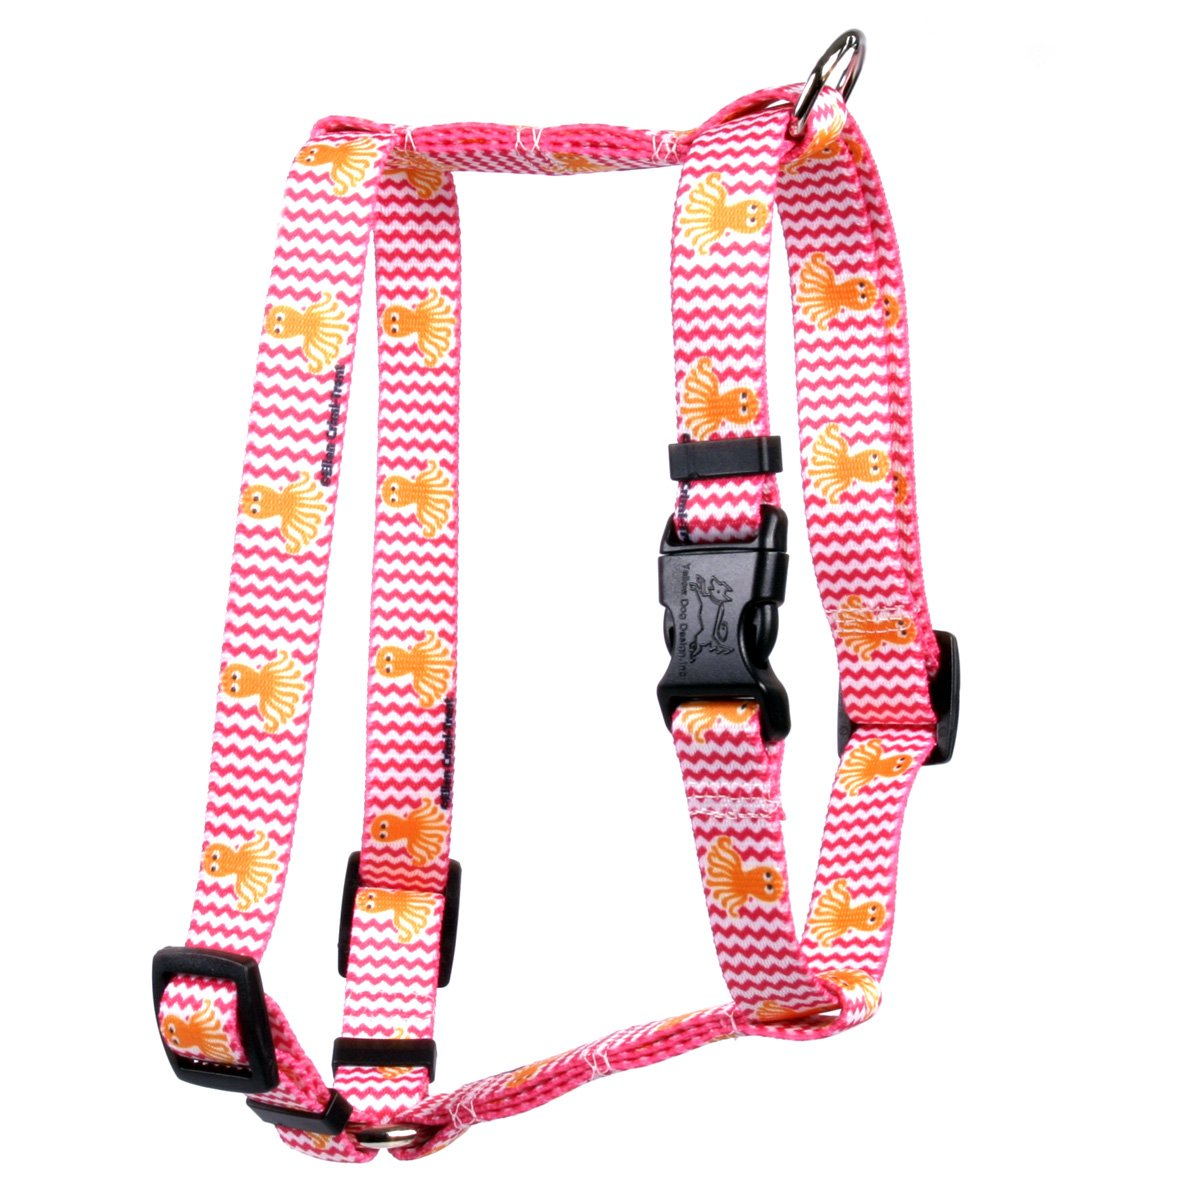 Yellow Dog Design Playful Octopus Roman H Dog Harness, Small/Medium-3/4 Wide fits Chest of 14 to 20''